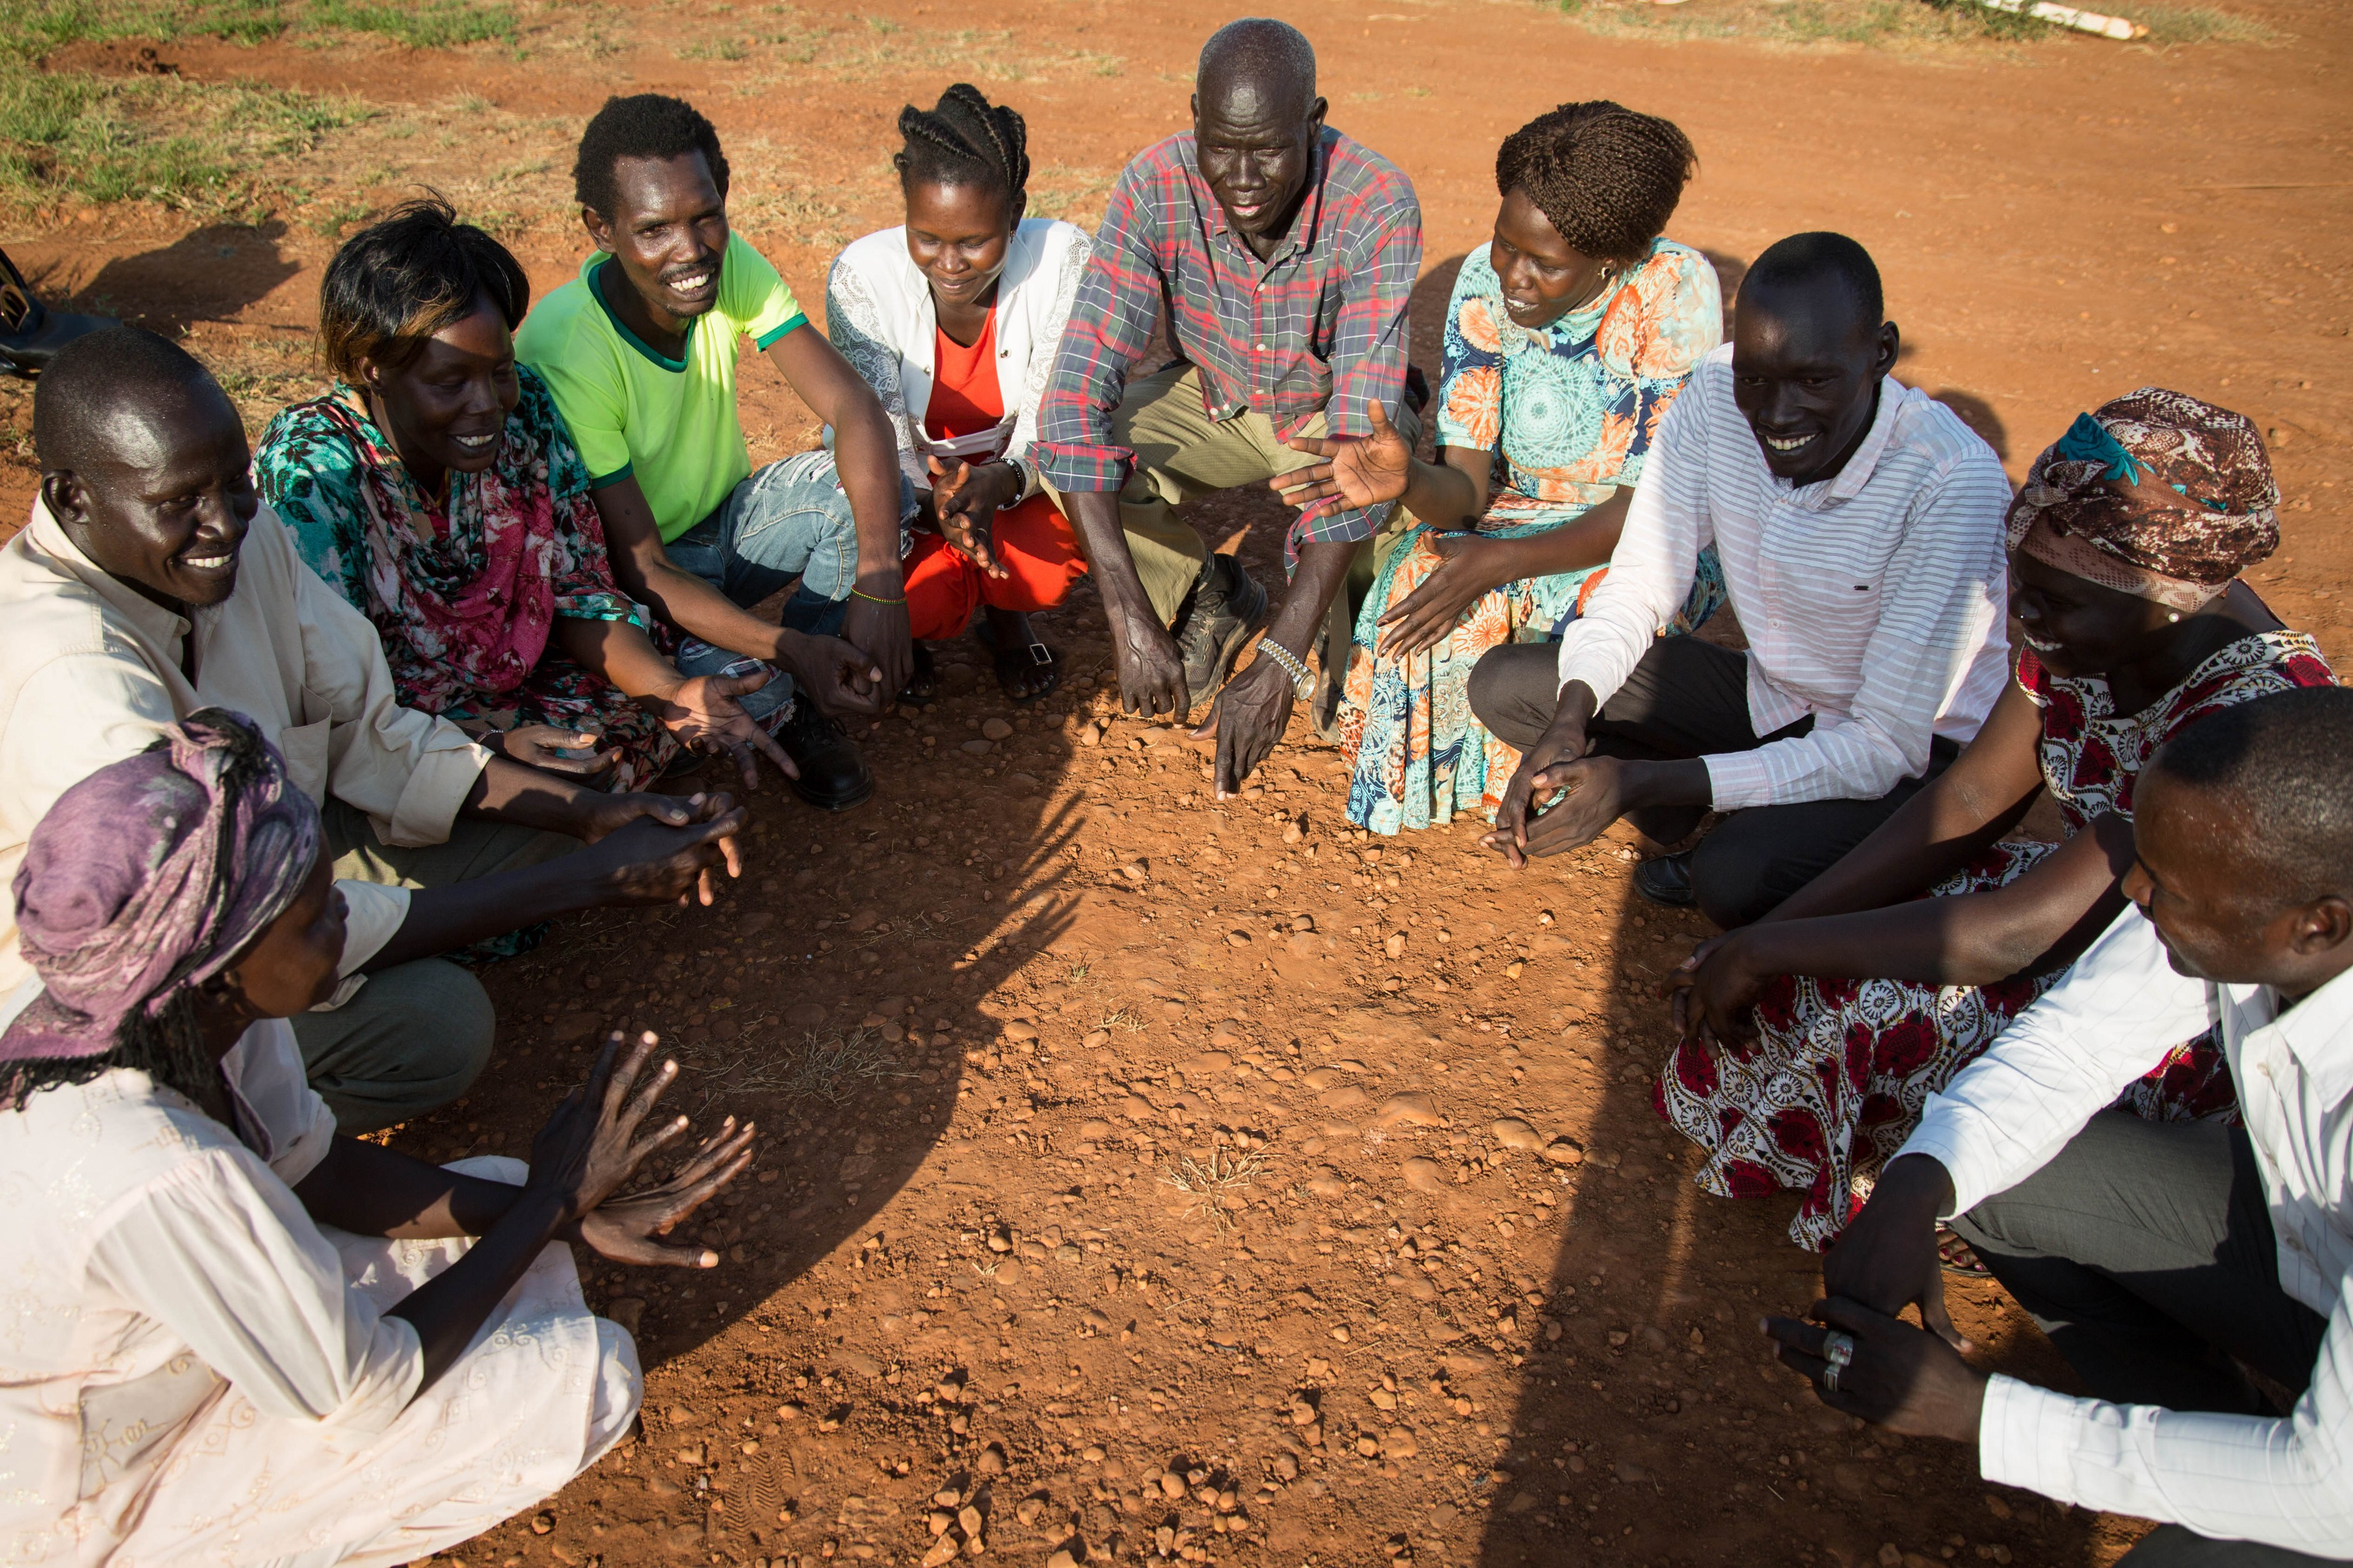 Women and men from the Ngok Dinka communities, Abyei, 2019